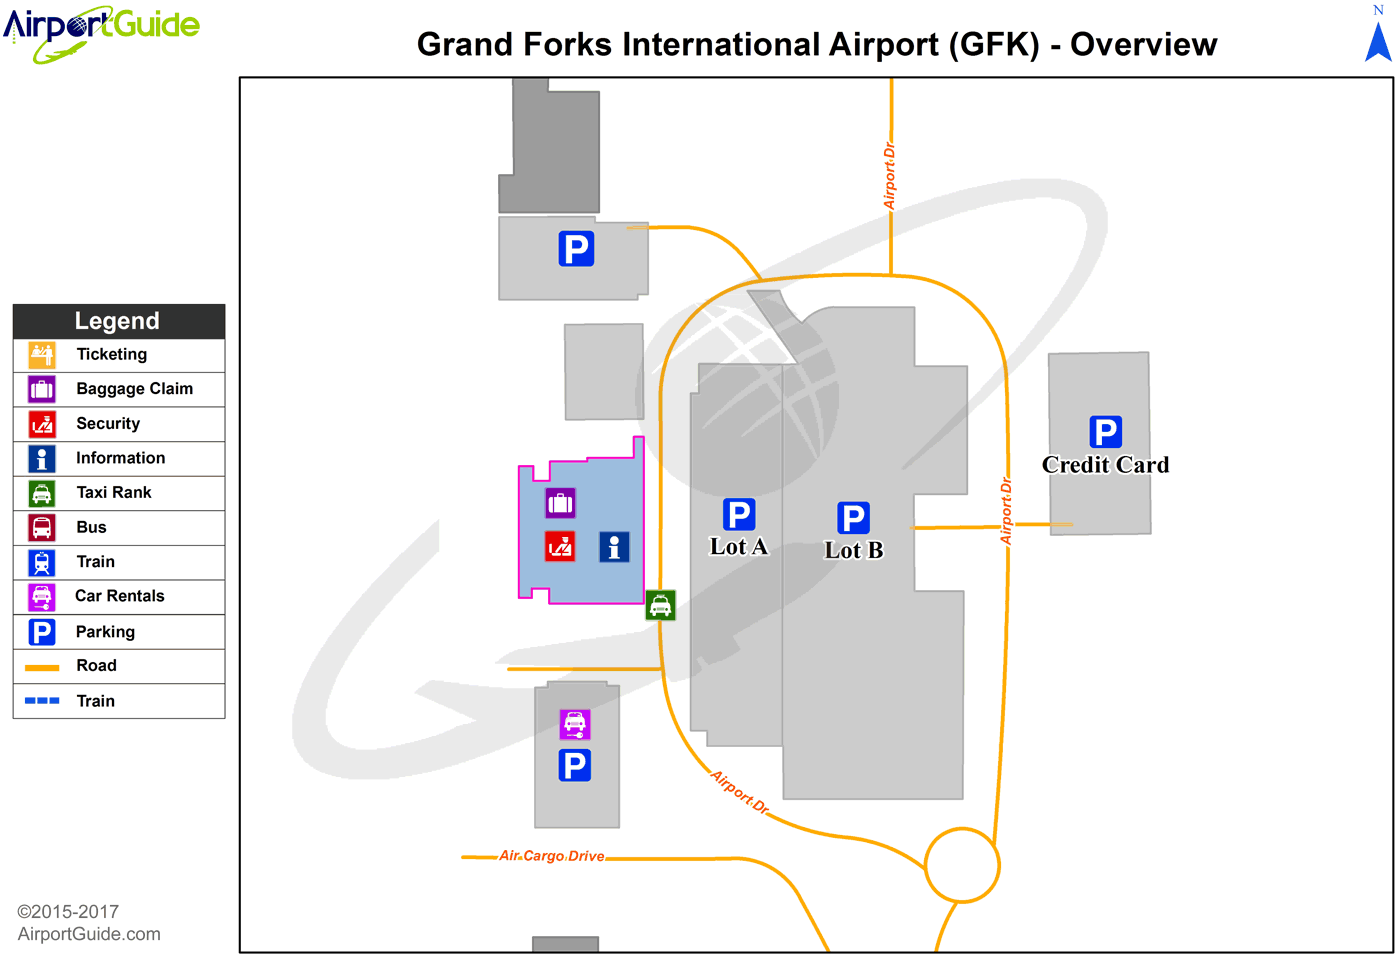 Grand Forks - Grand Forks International (GFK) Airport Terminal Map - Overview